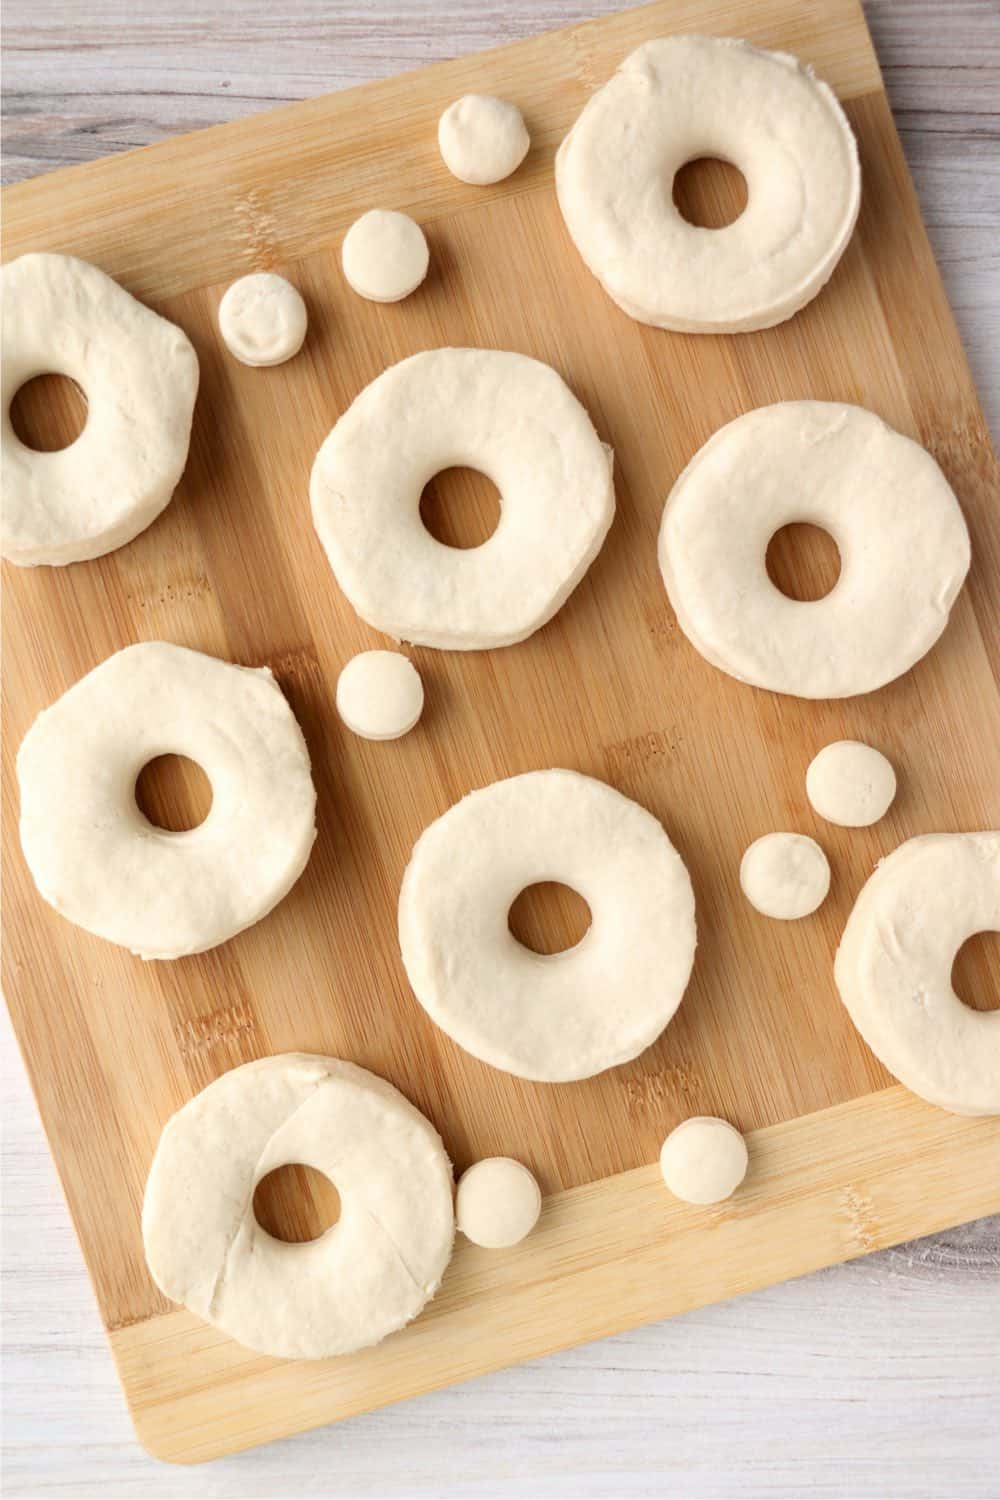 Biscuit dough cut to look like donuts